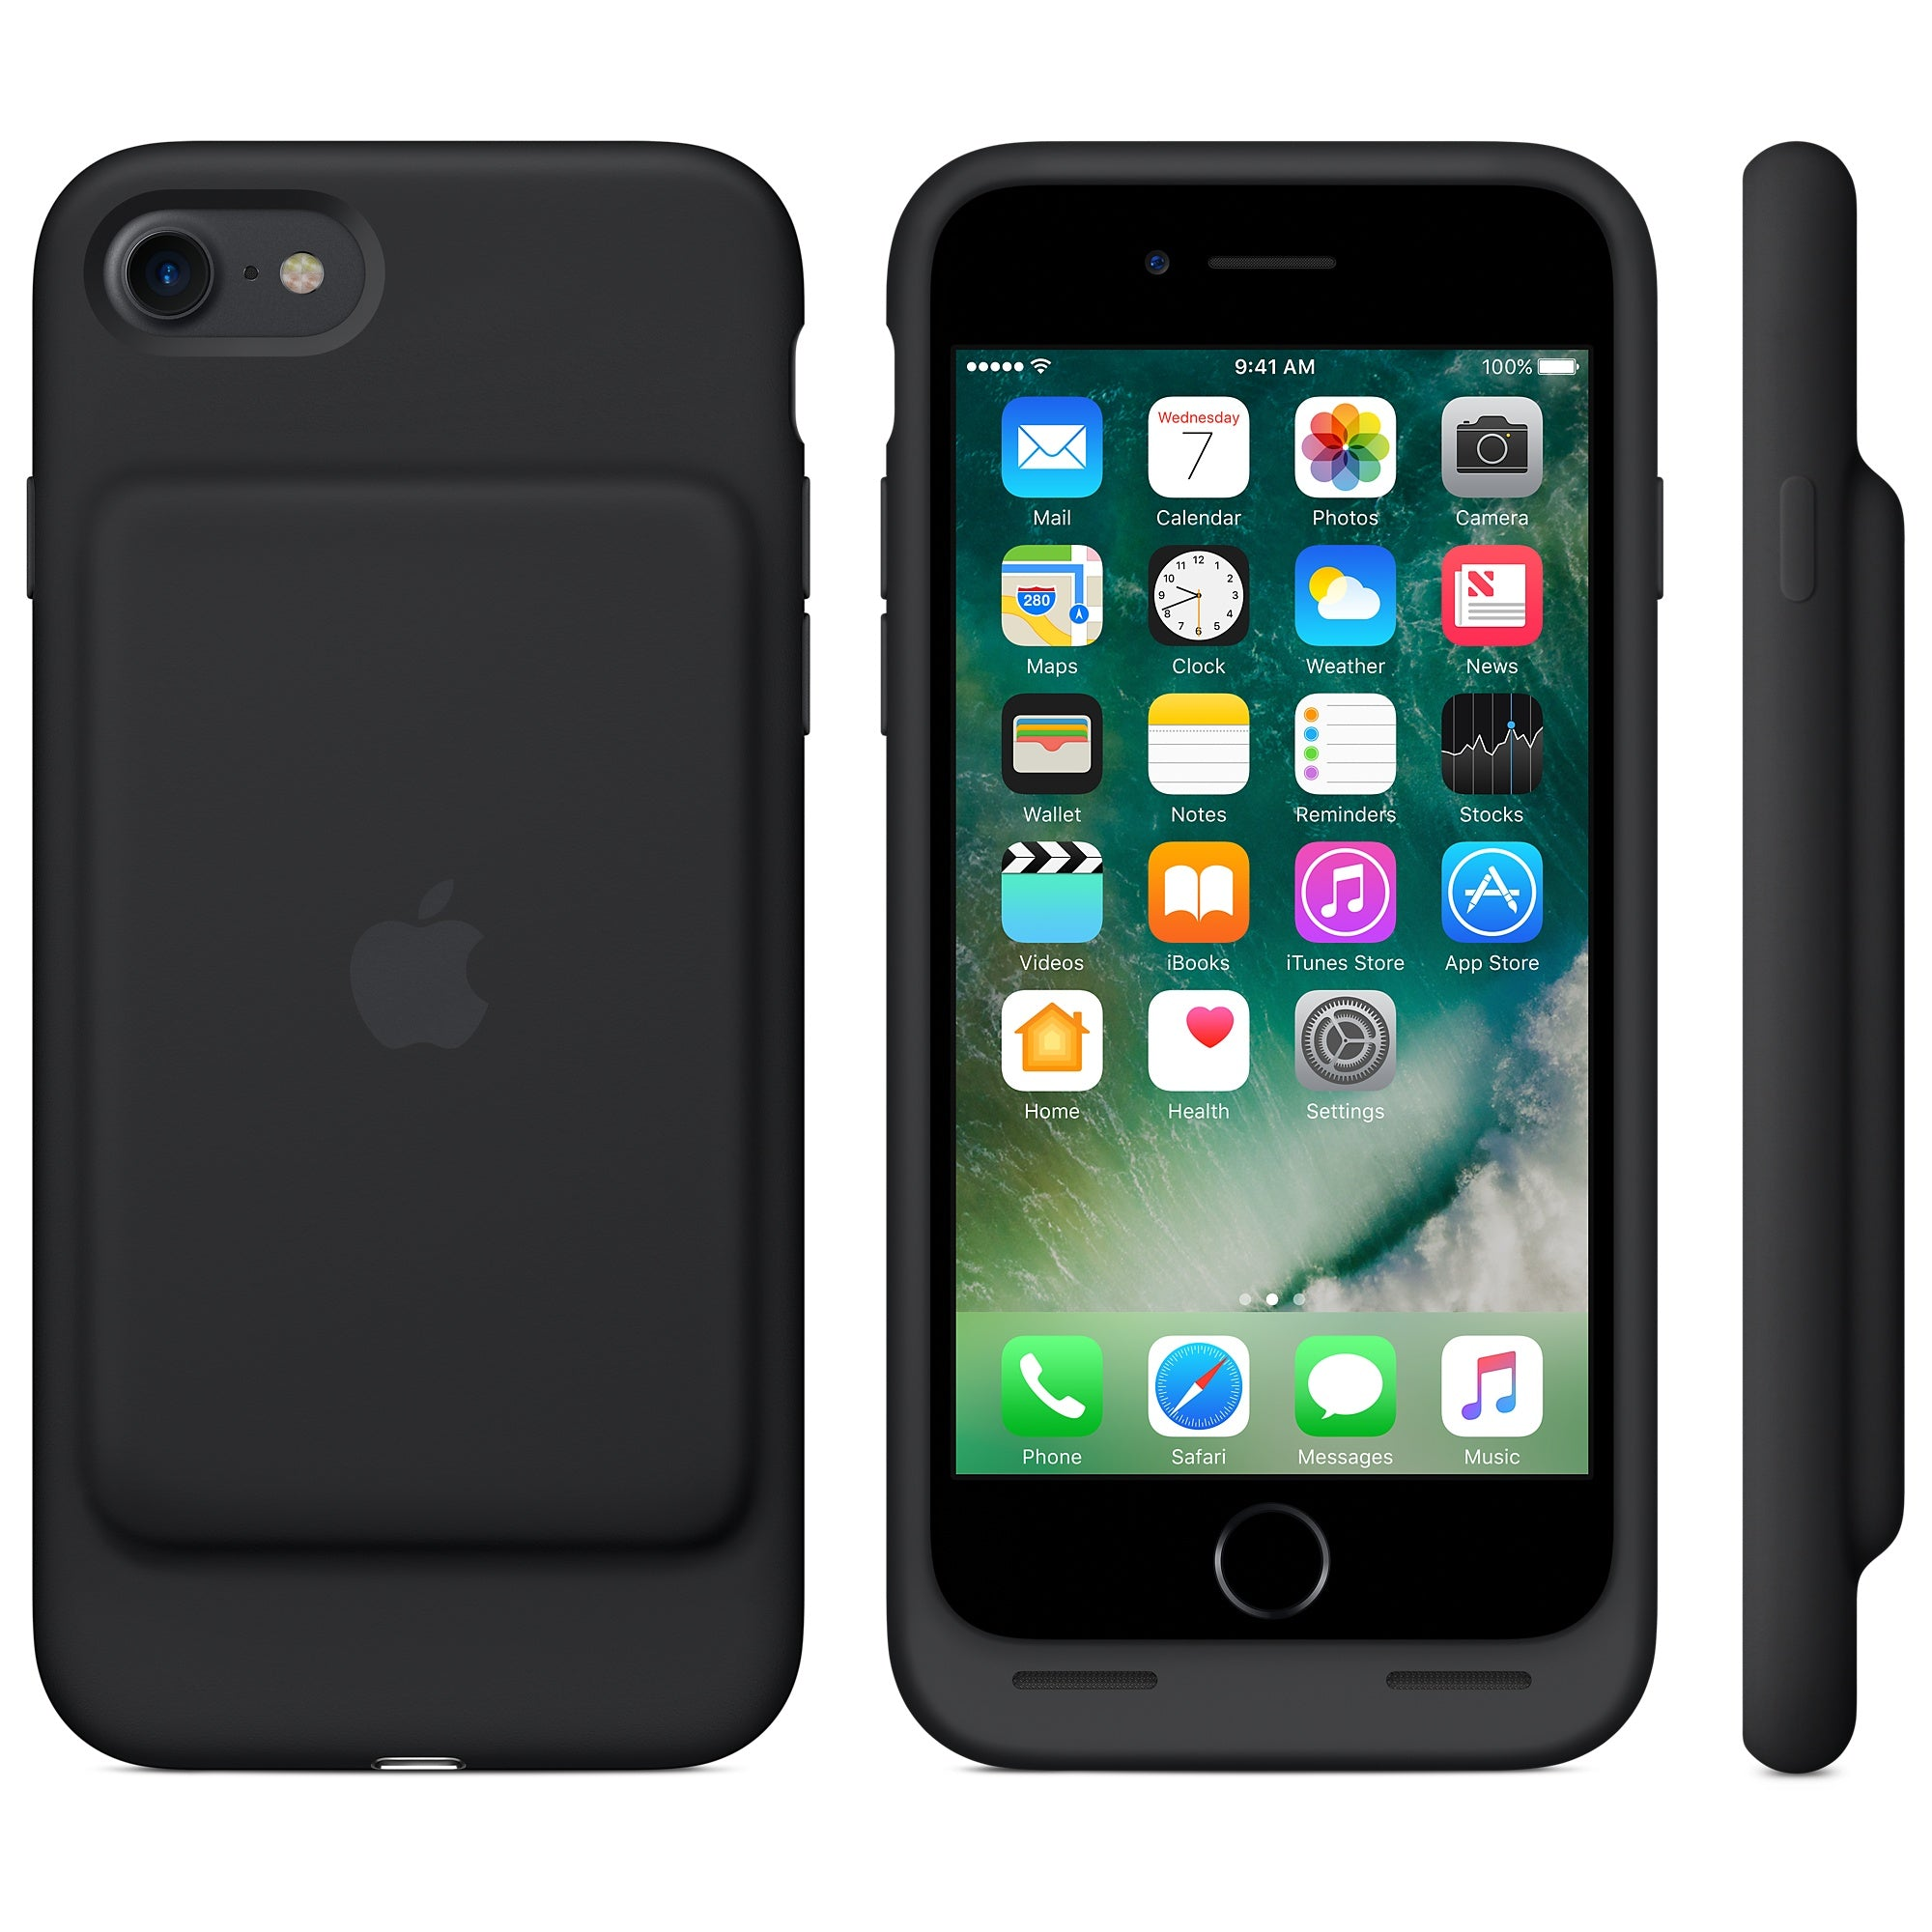 Distil Union's review of Battery Case for iPhone from Apple